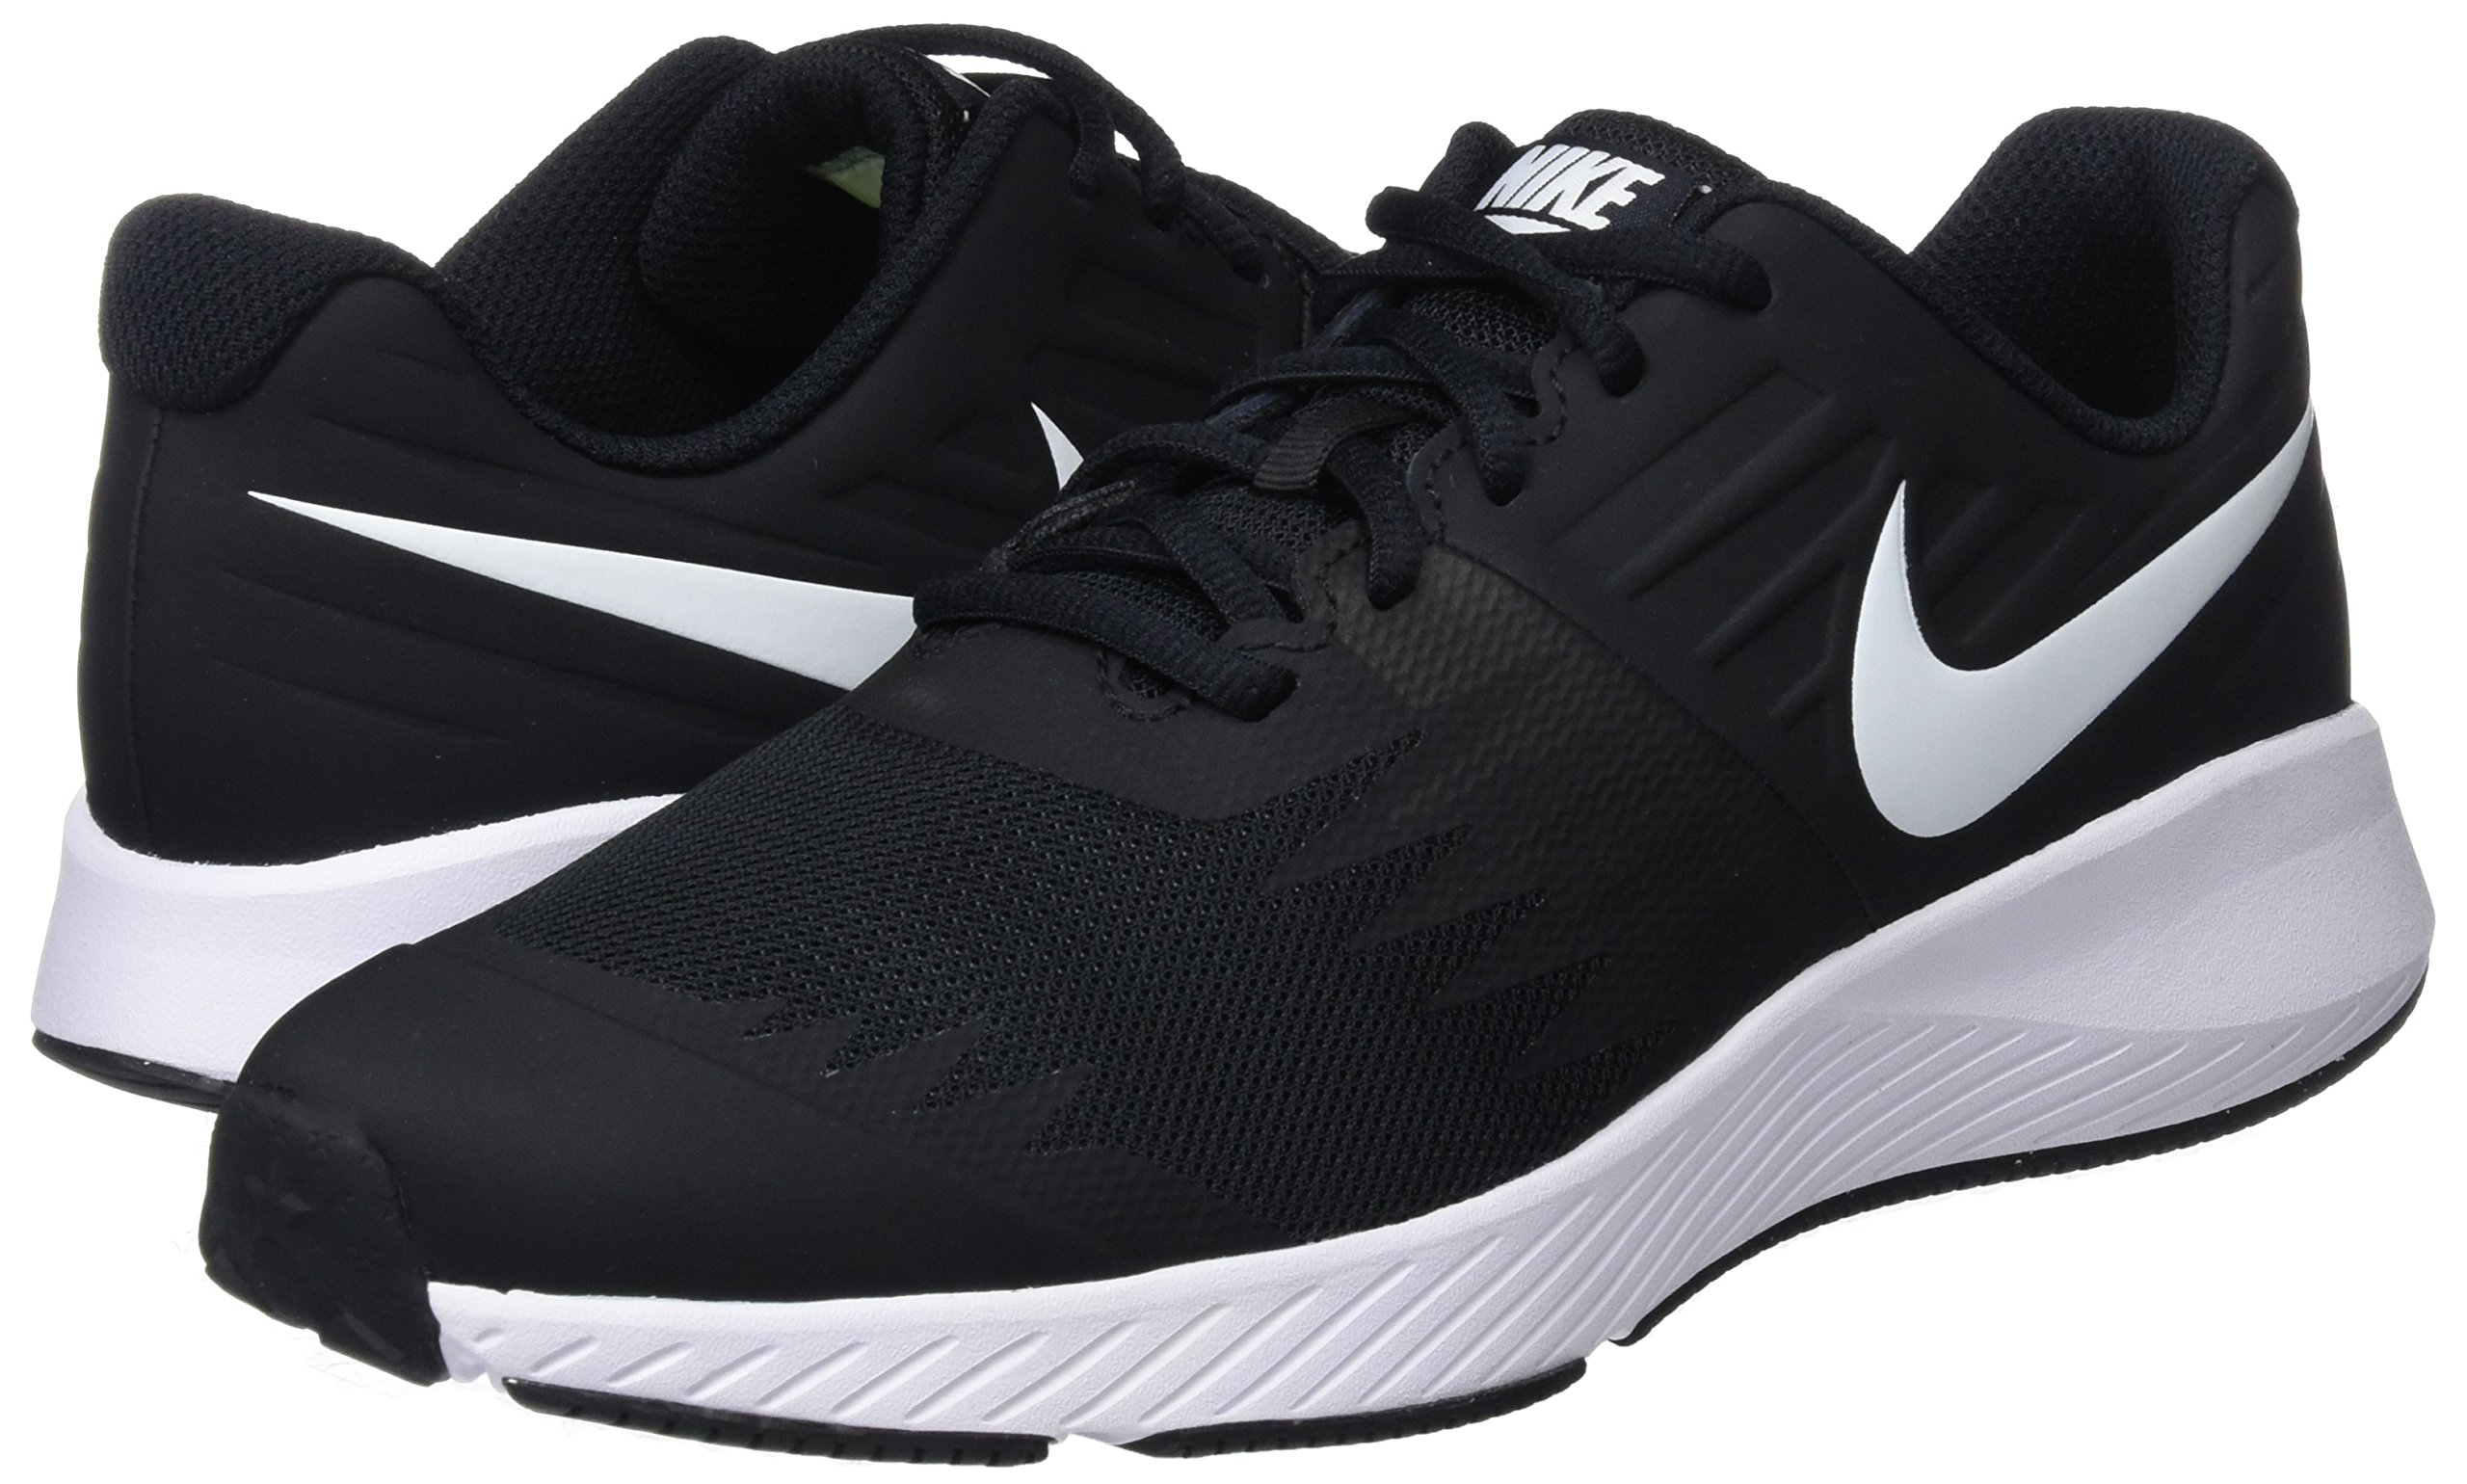 Nike Kids' Grade School Star Runner Running Shoes (3.5, Black/White) by Nike (Image #5)